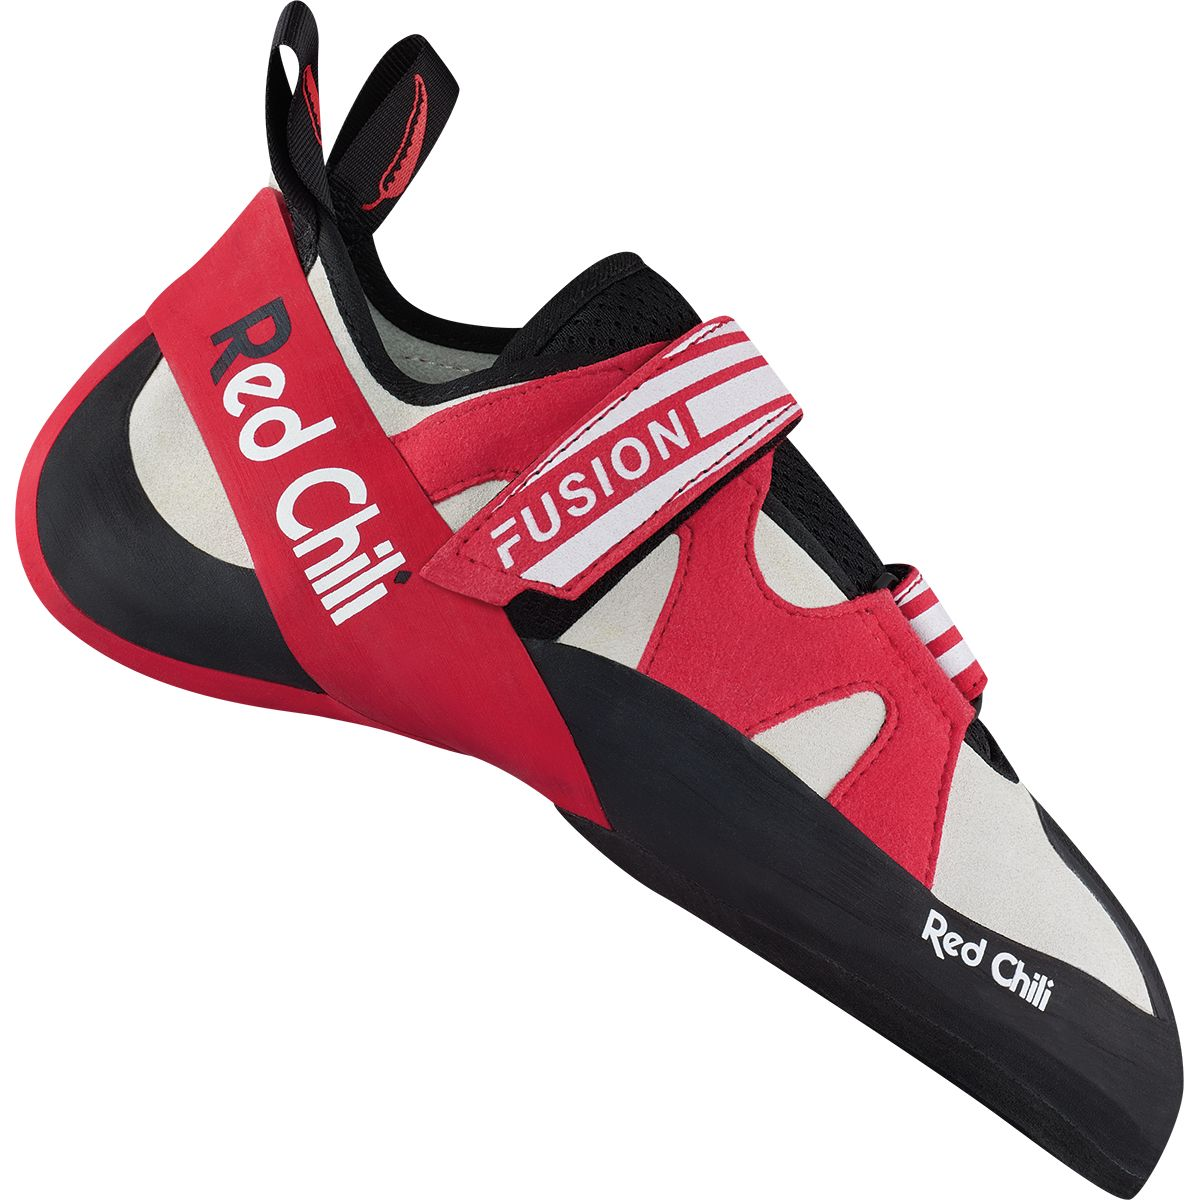 Red Chili Fusion VCR Kletterschuhe Rot 40.5